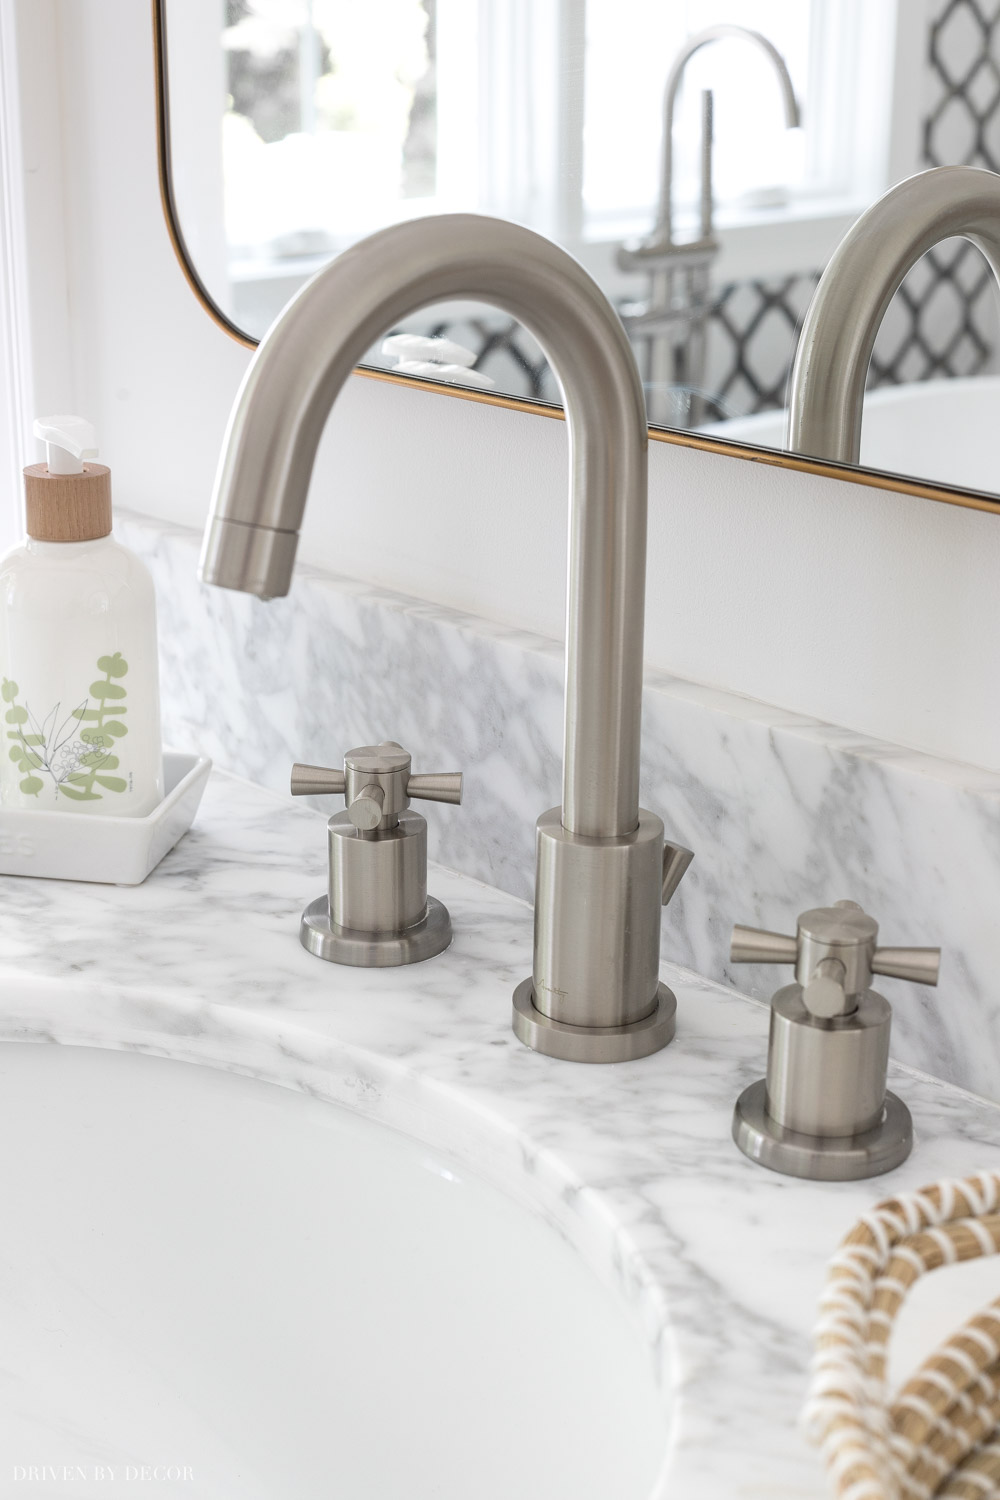 Love how she mixed metals with brushed nickel faucets and gold mirrors and vanity lights